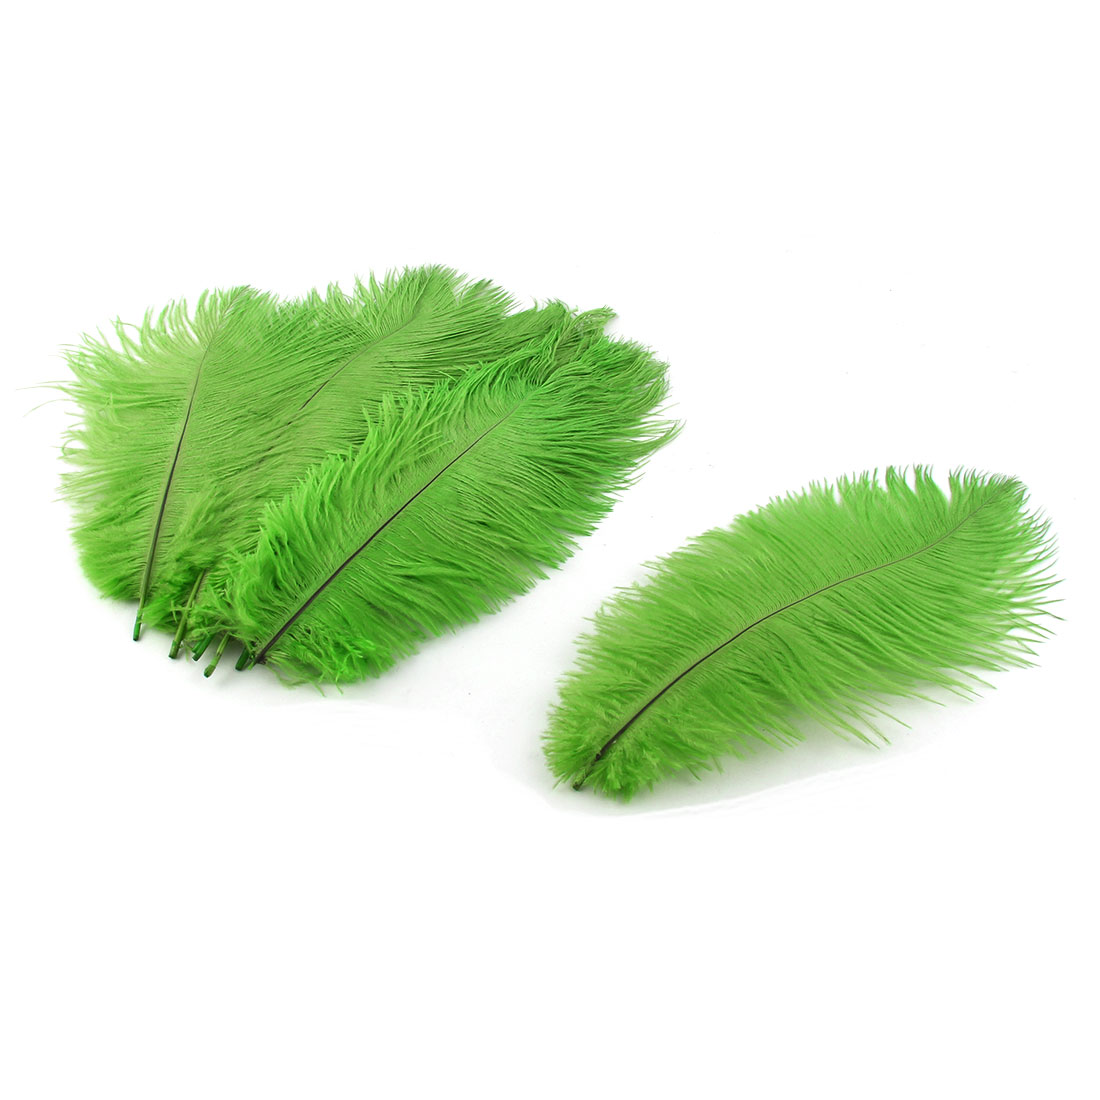 Wedding Party Clothes DIY Decor Ostrich Feathers Plume Green 20-25cm Length 10pcs